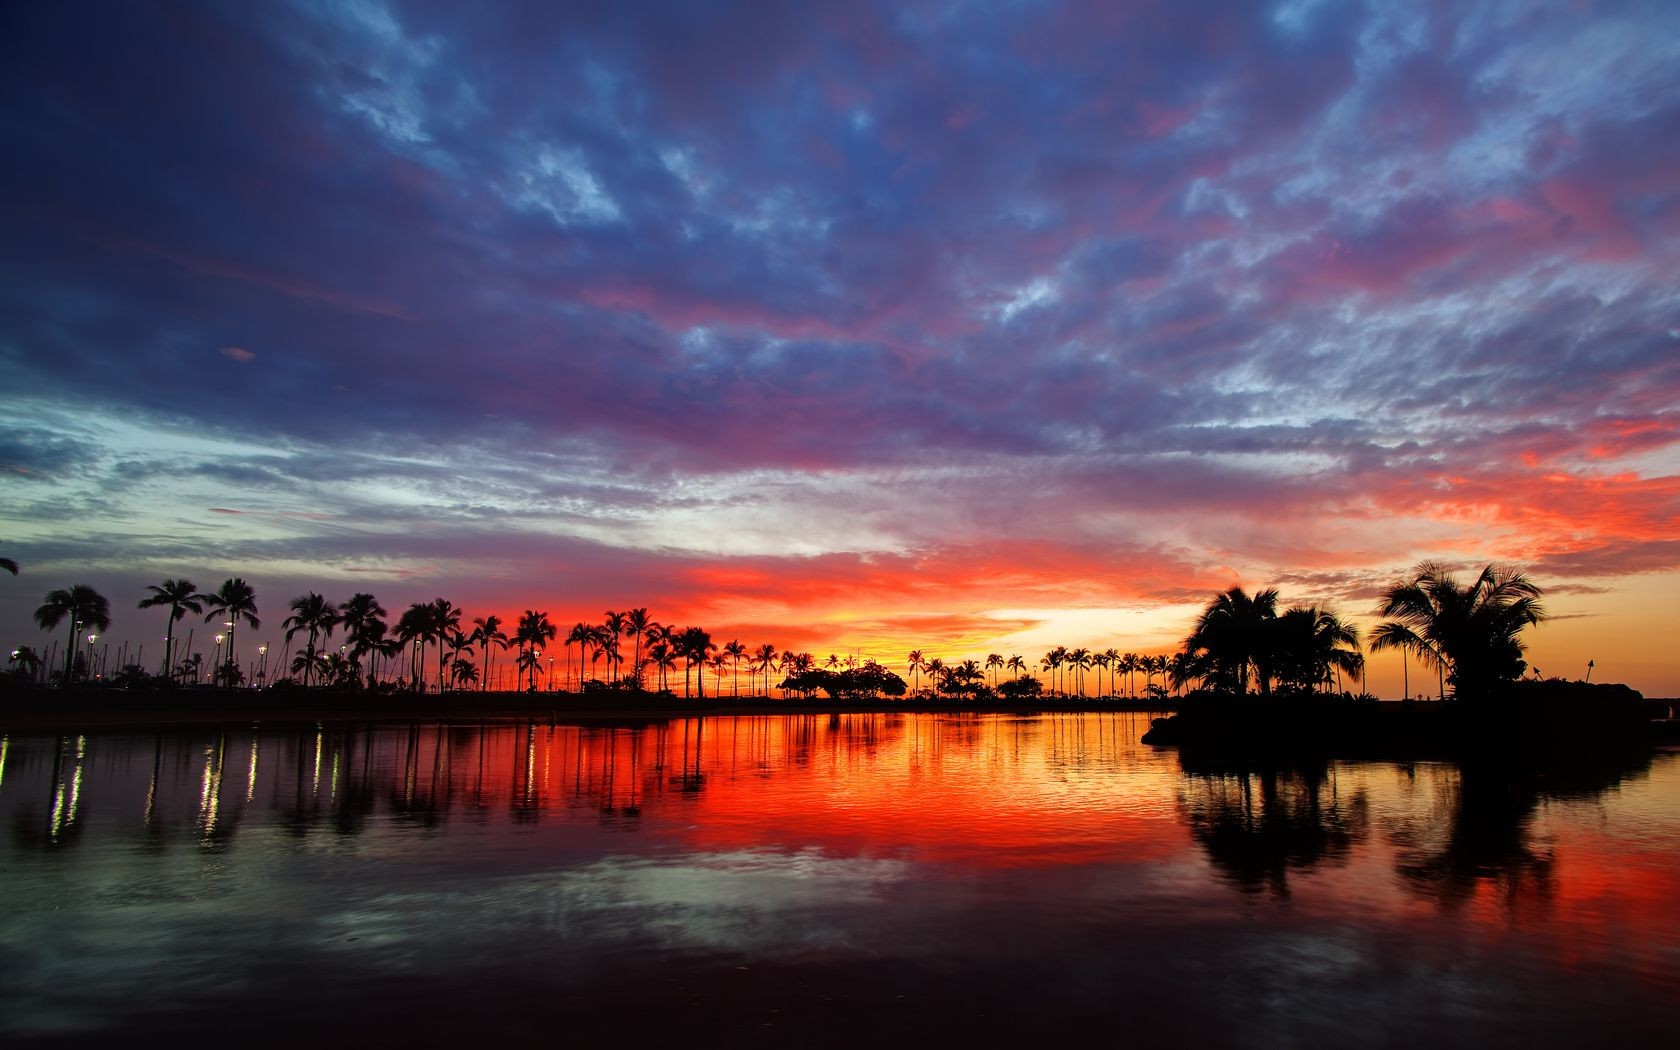 sky water sunset hawaii palm trees